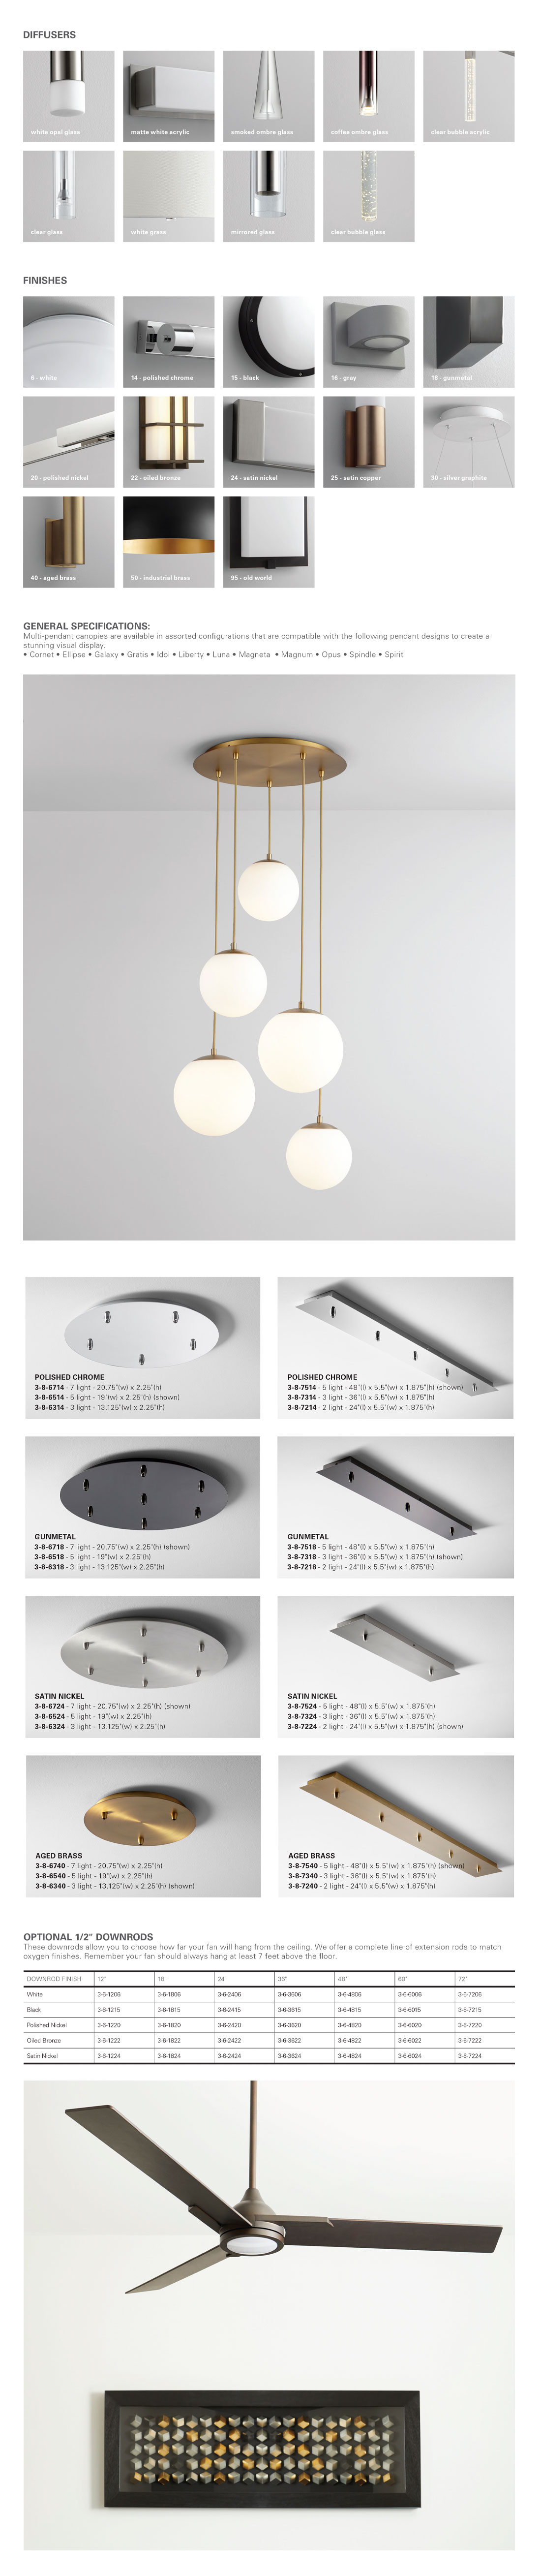 available finishes and diffuser options for oxygen lighting products